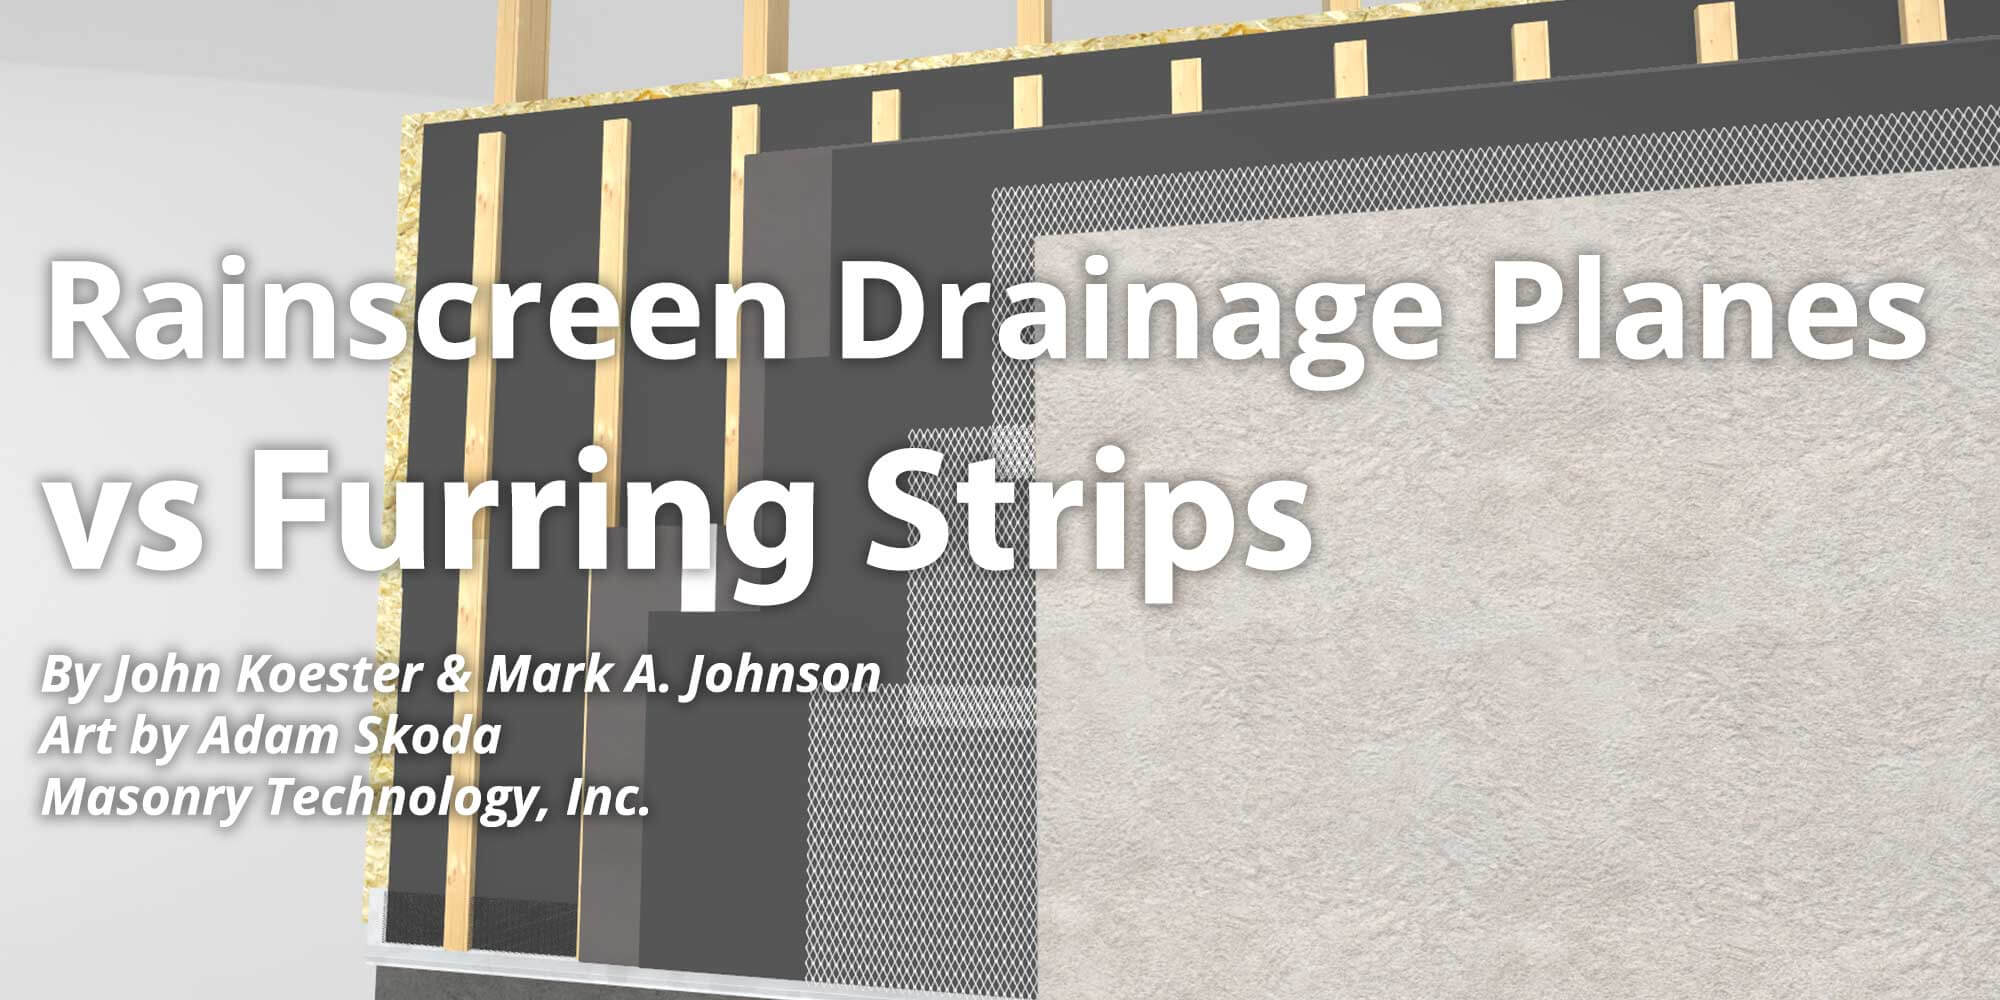 Rainscreen Drainage Planes Vs Furring Strips